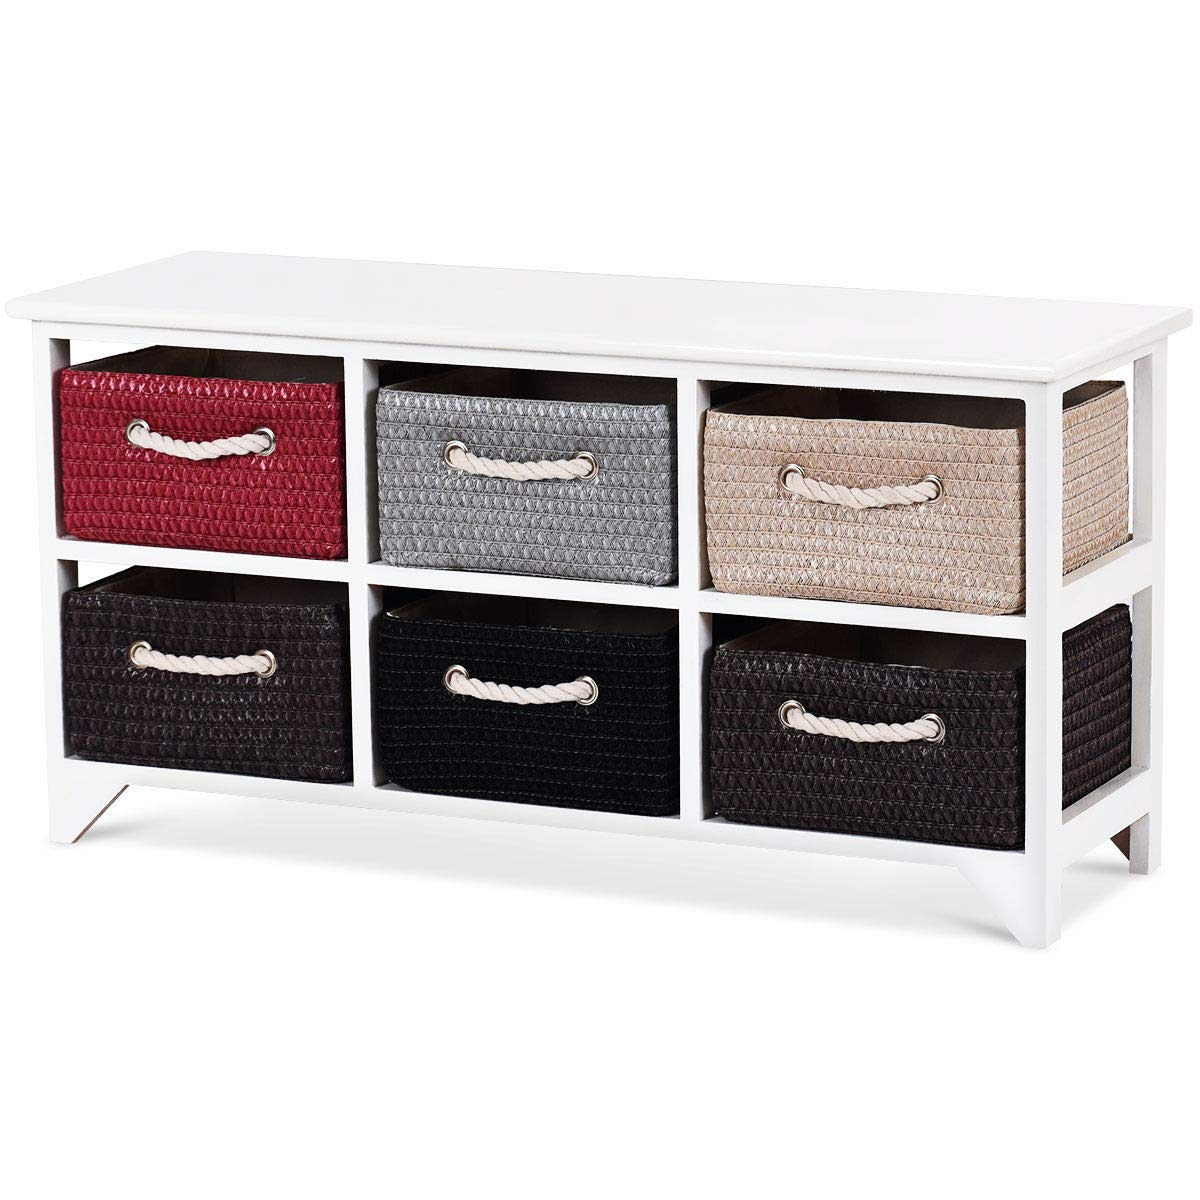 Amazon Com Seleq Mdf Wood Frame Drawer Chest With Baskets Home Kitchen